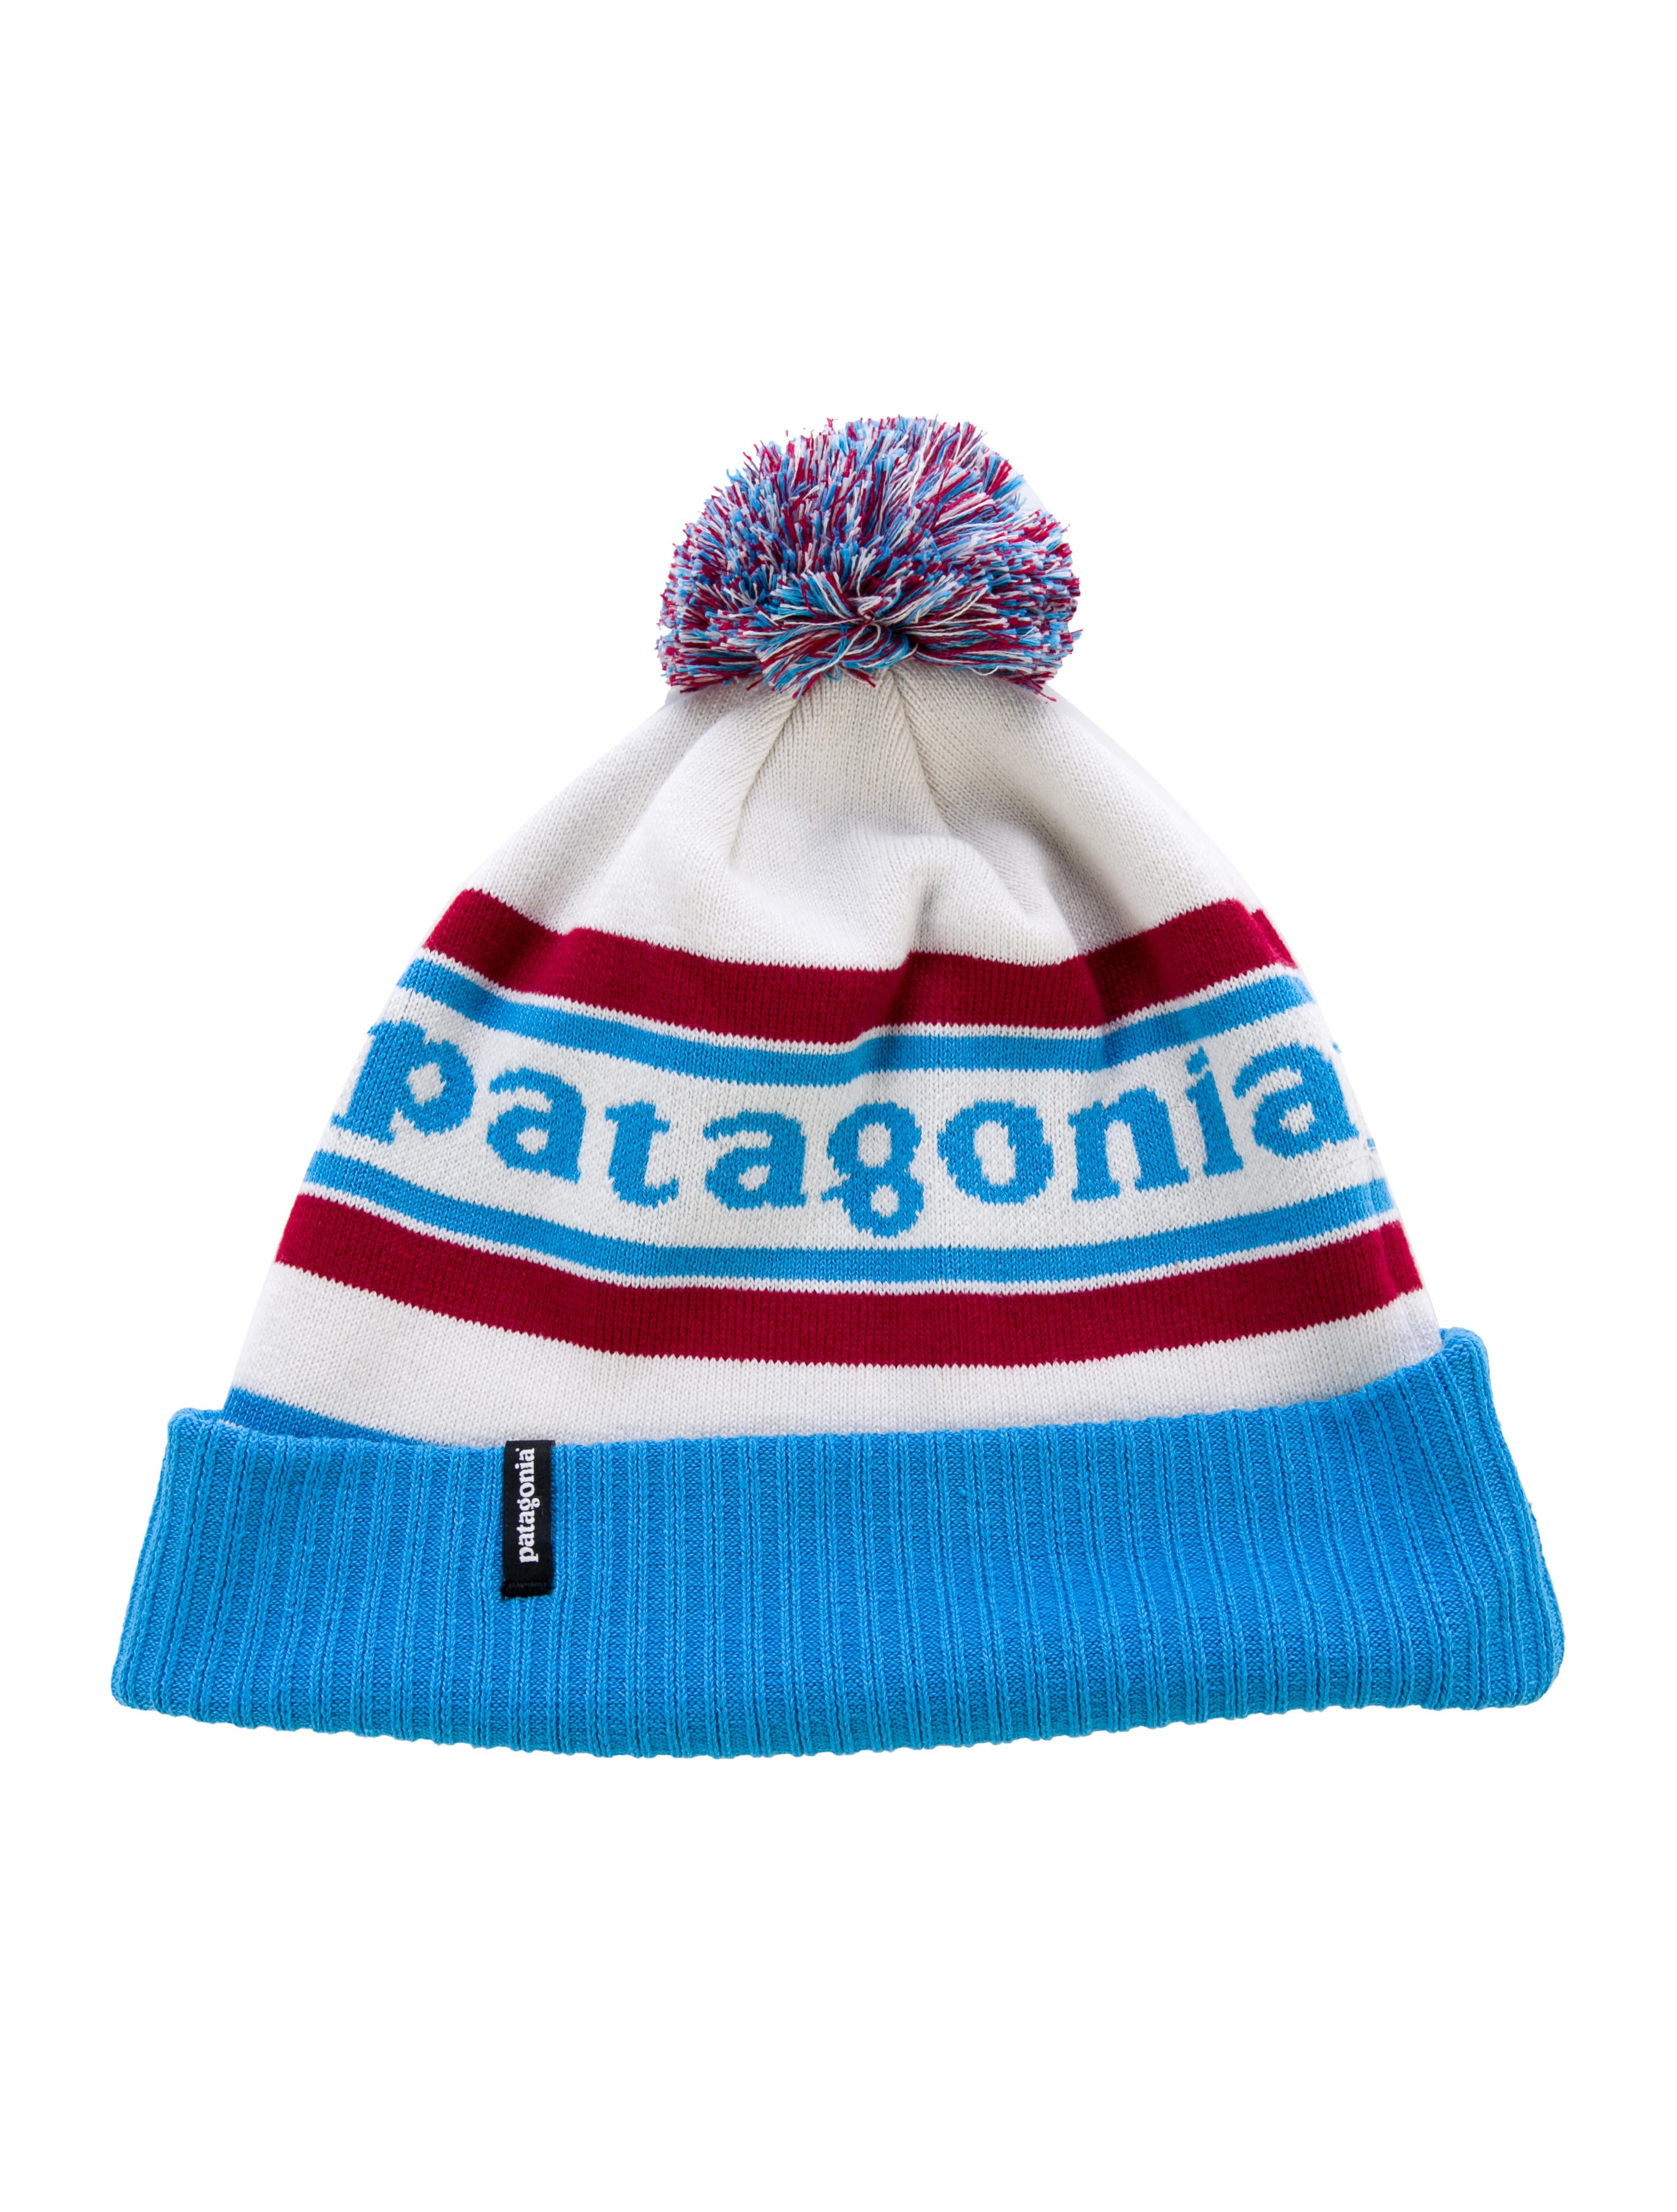 2048ded94 Patagonia Logo Pom Beanie - Accessories - WPATG20654 | The RealReal